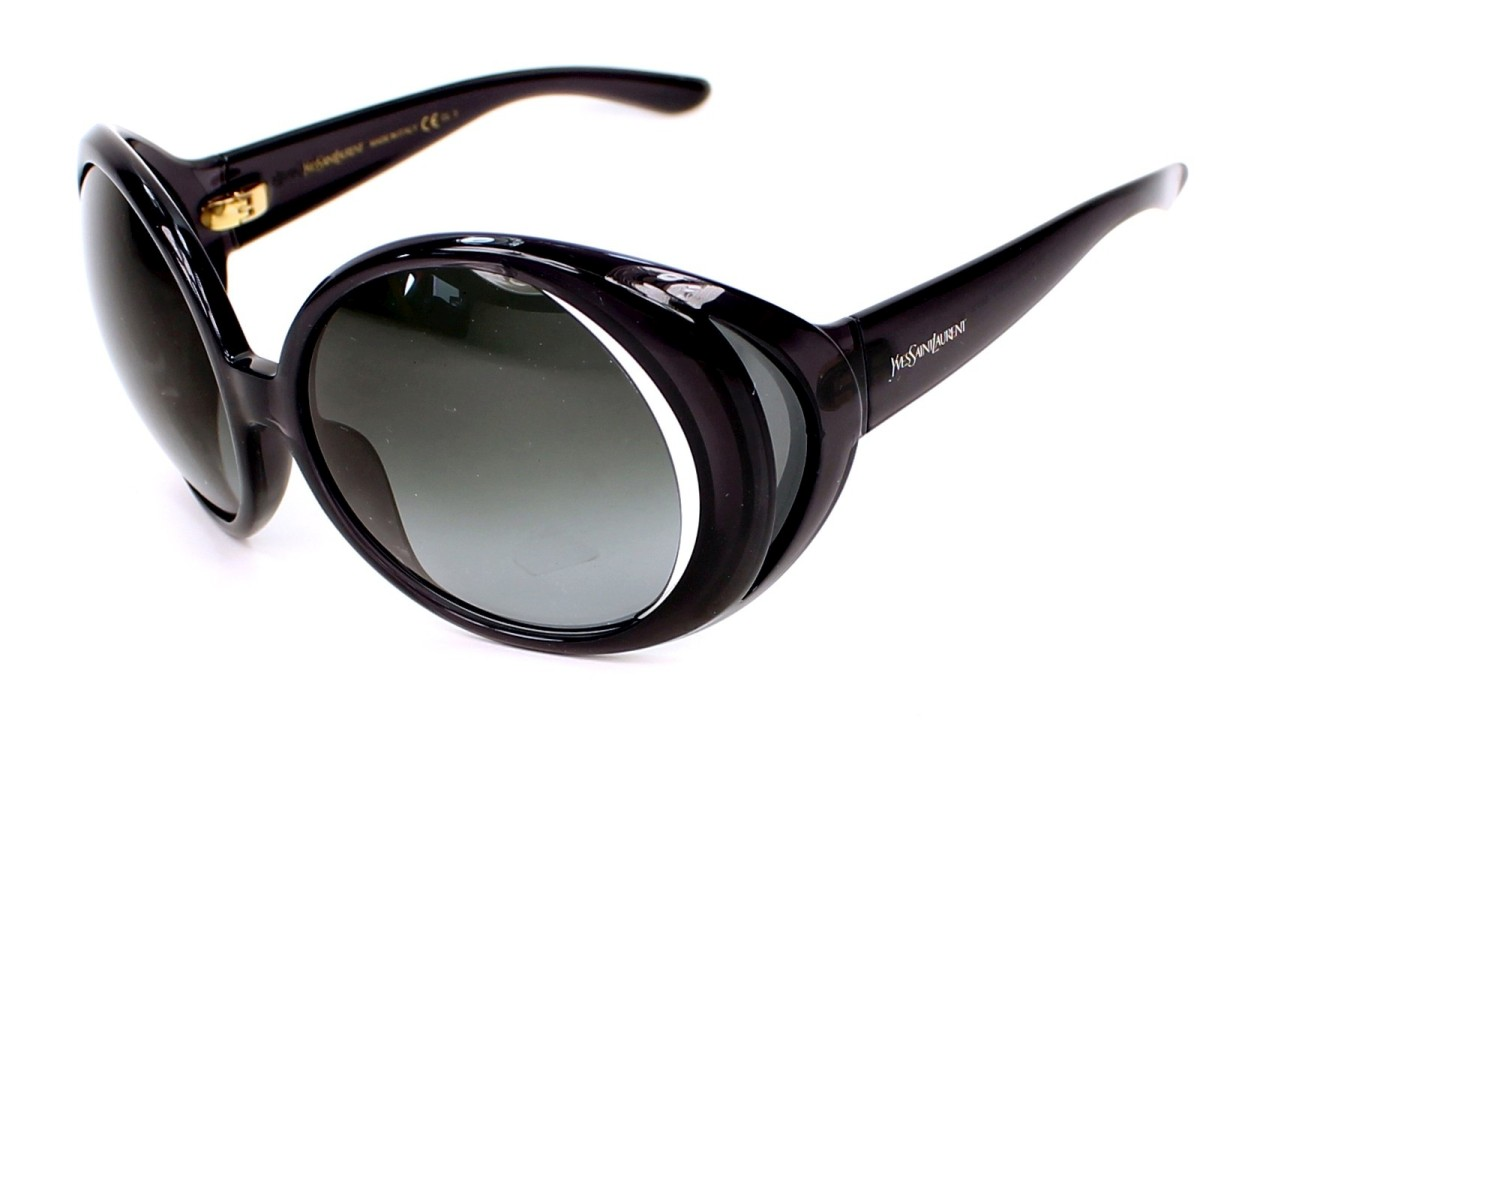 ysl sunglasses  Yves Saint Laurent sunglasses YSL 6356/S EGYPT 58